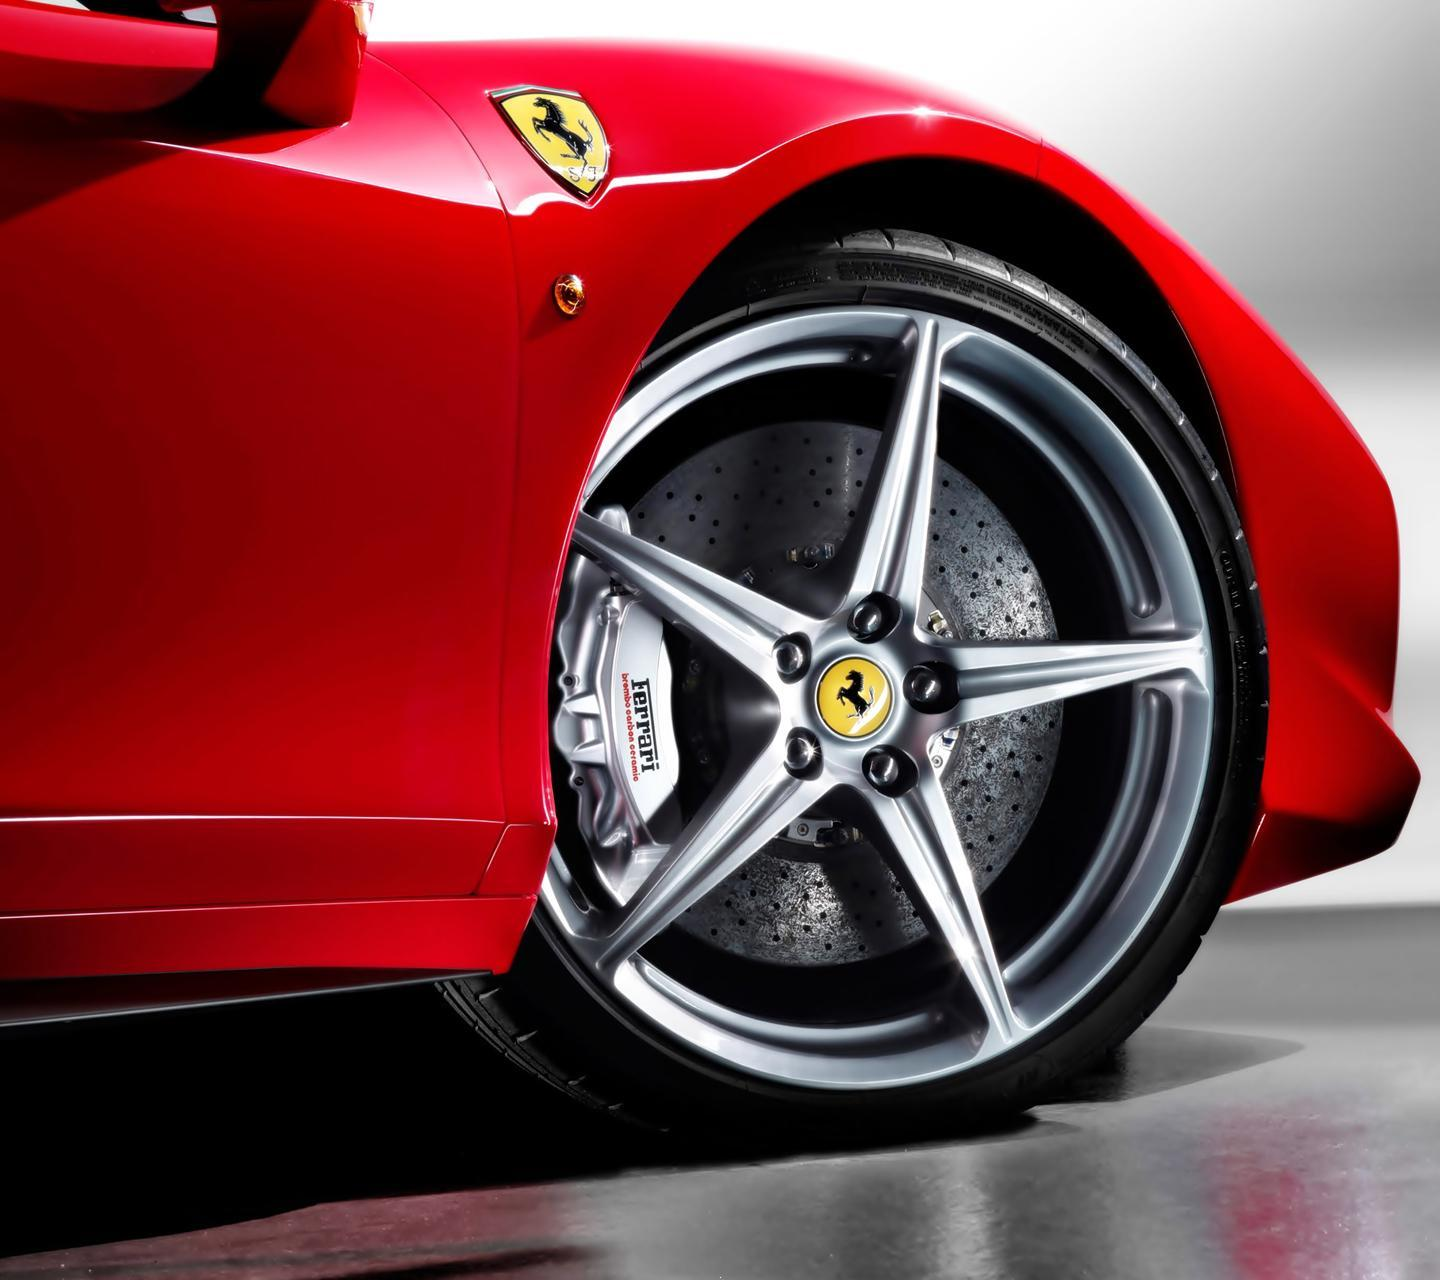 Download Red Ferrari Cars Wallpapers For Your Mobile Cell Phone